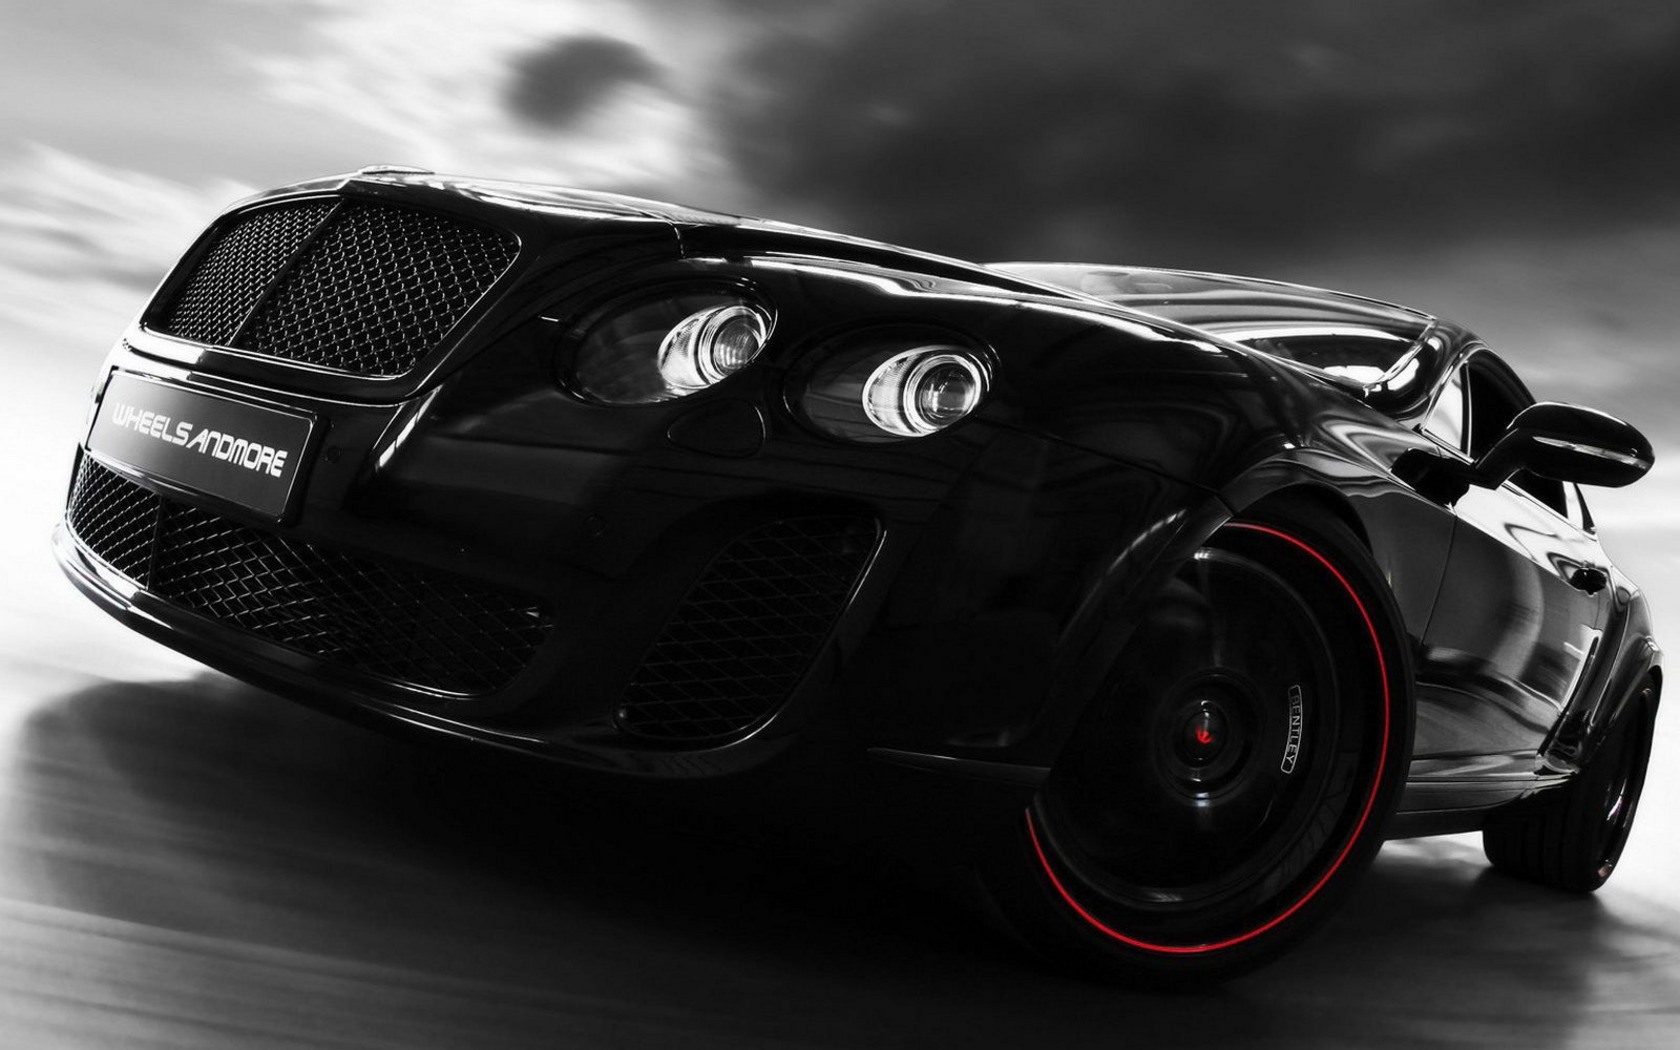 Bentley black Wallpaper Free Picture Download Image Of